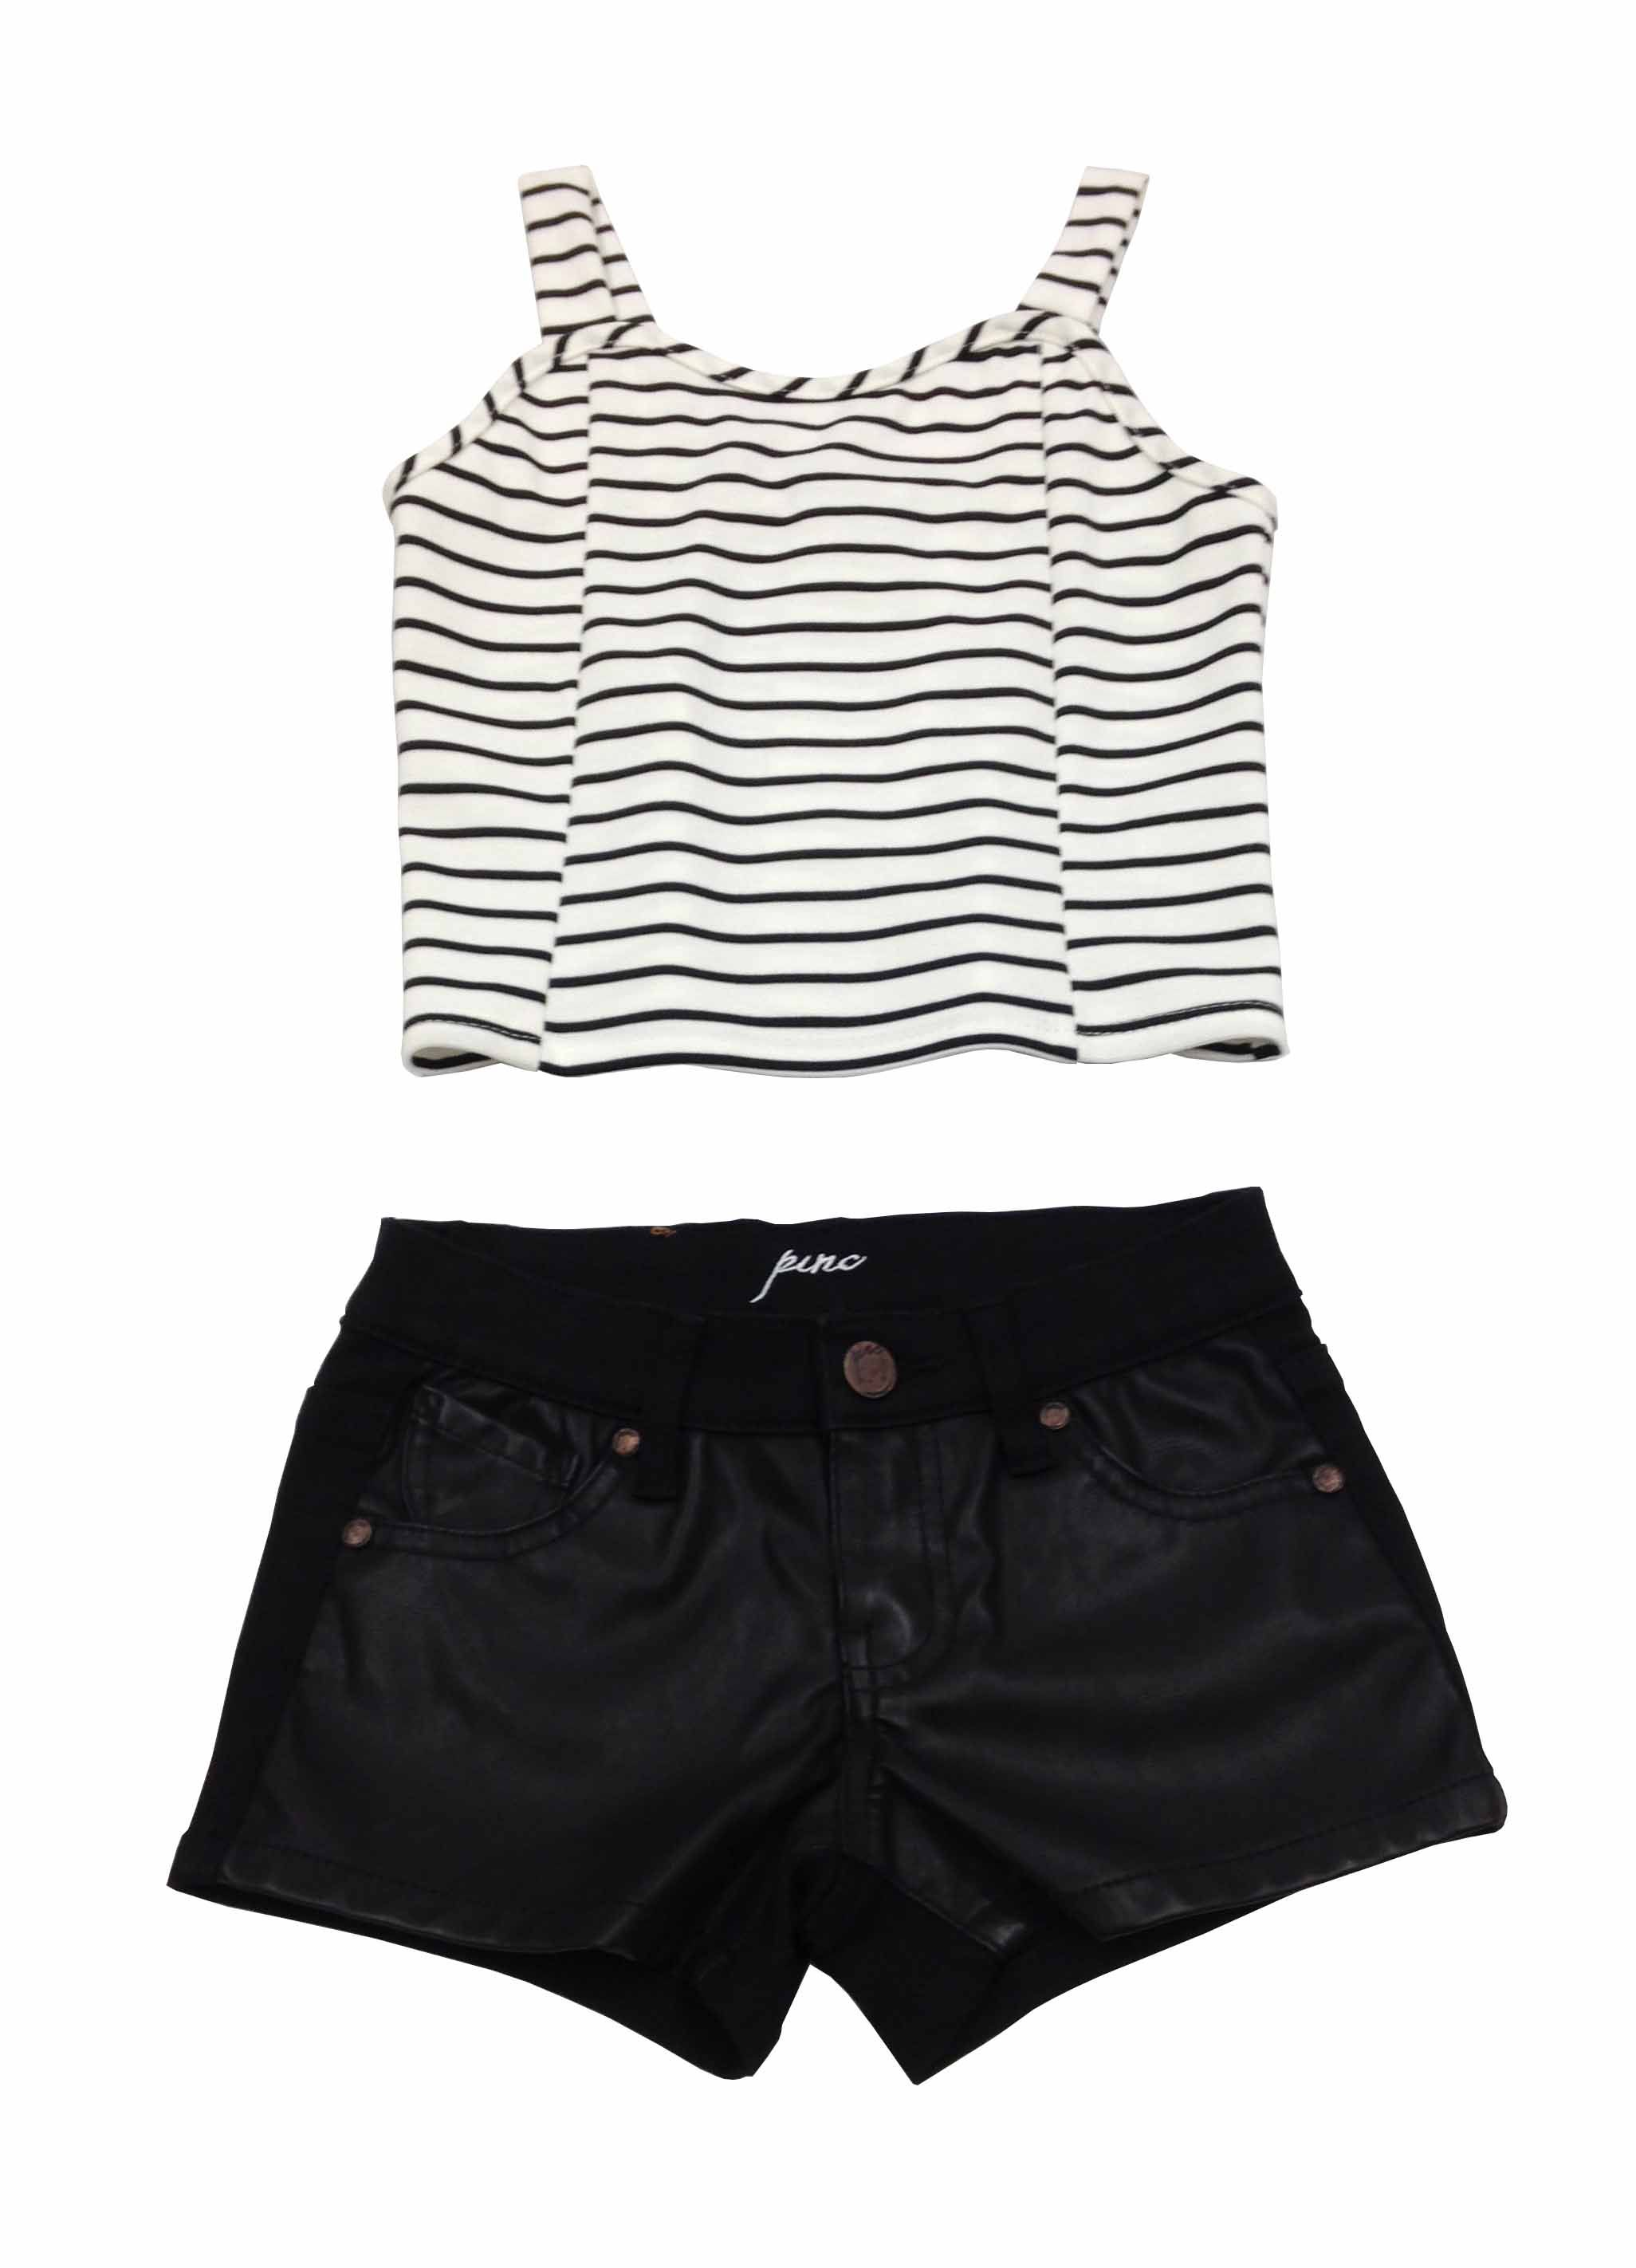 Pinc Premium Outfit of the Day - Black Pleather front Denim Short matched with a Black/White Striped Crop Top